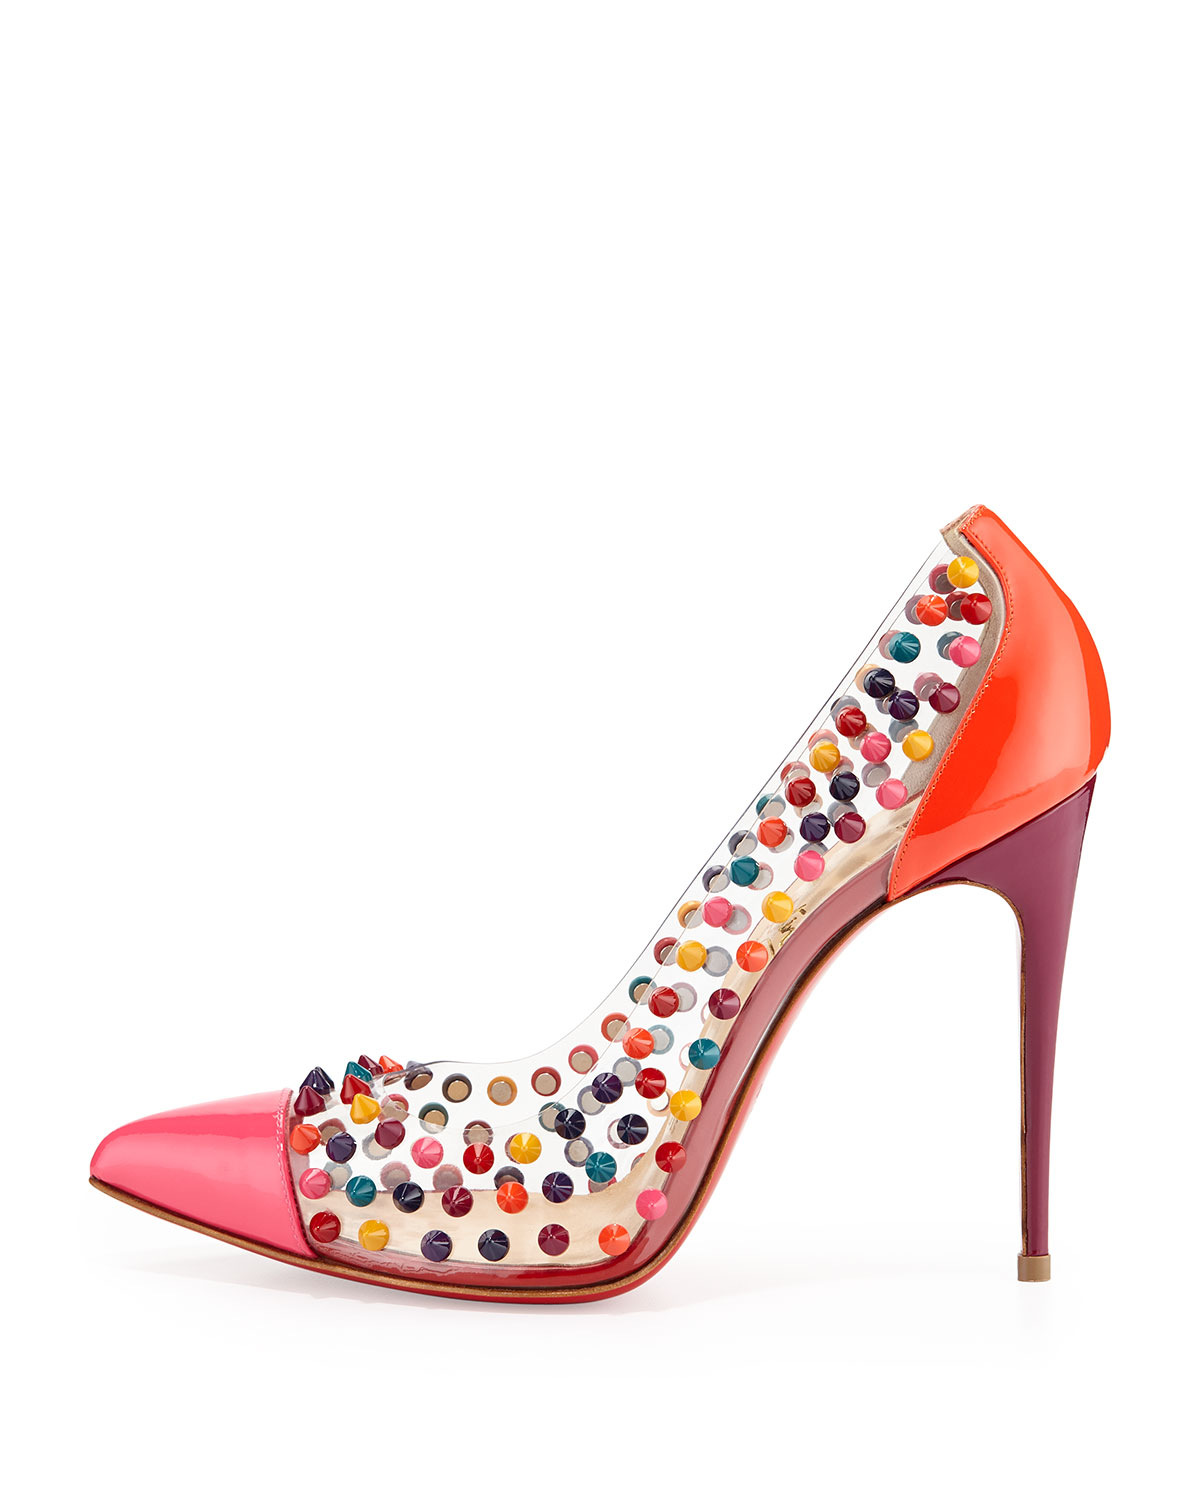 christian loubatan shoes - christian louboutin pointed-toe pumps Ivory and multicolor leather ...